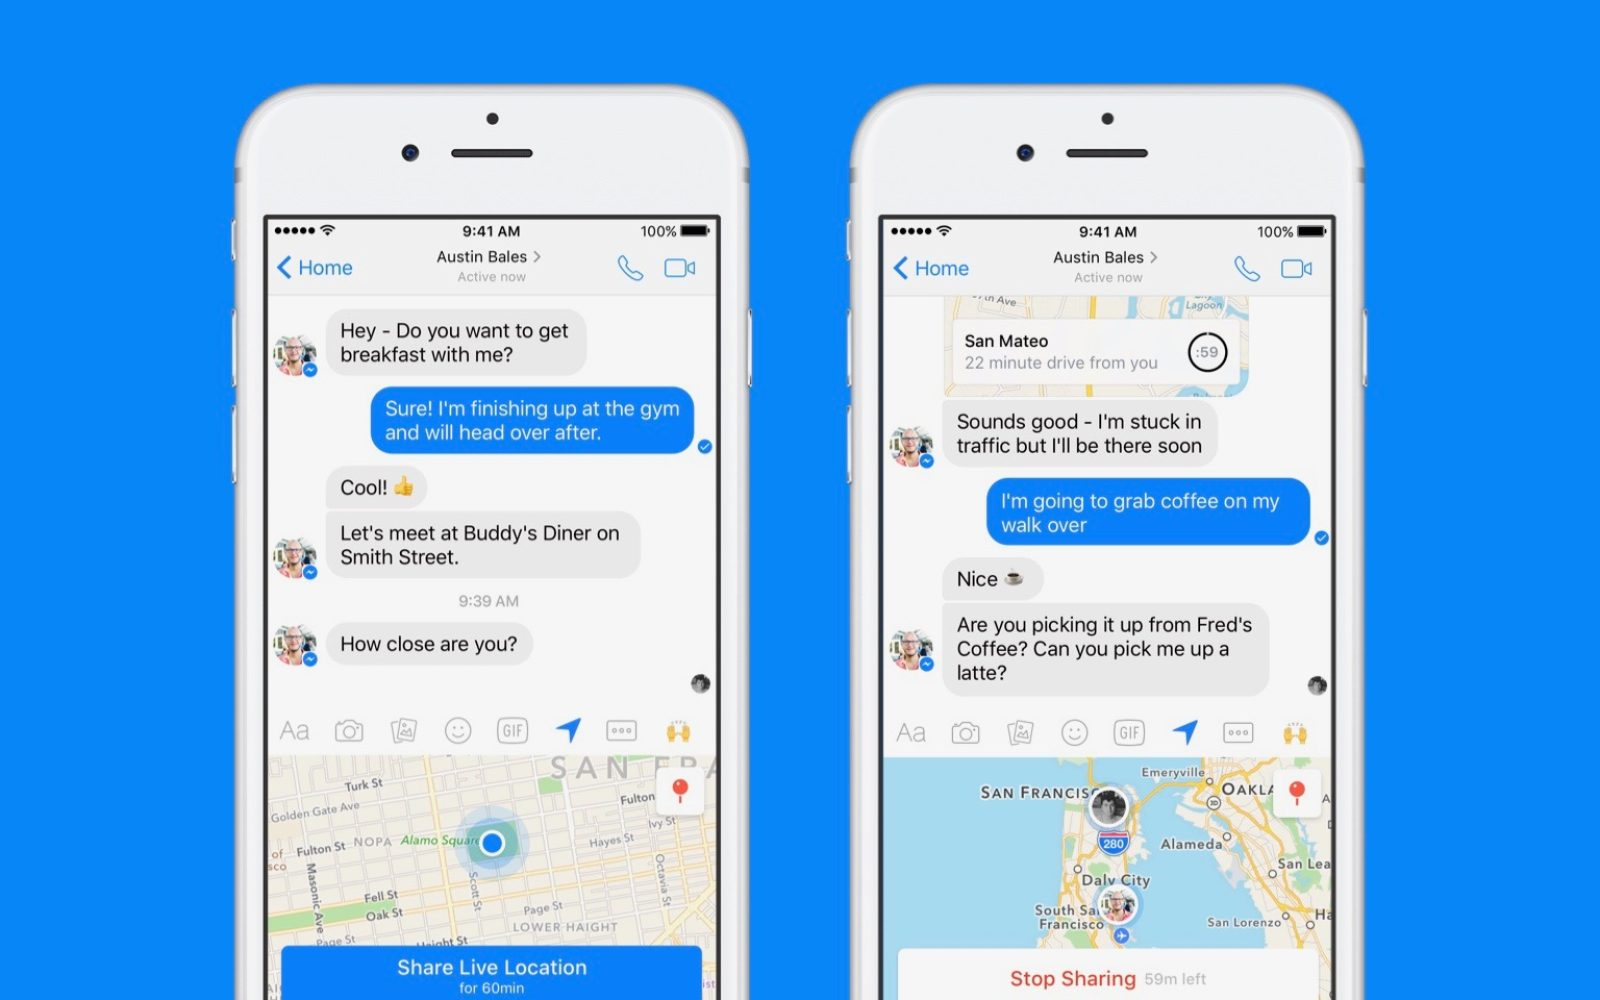 Facebook Messenger rolling out hour-long Live Location